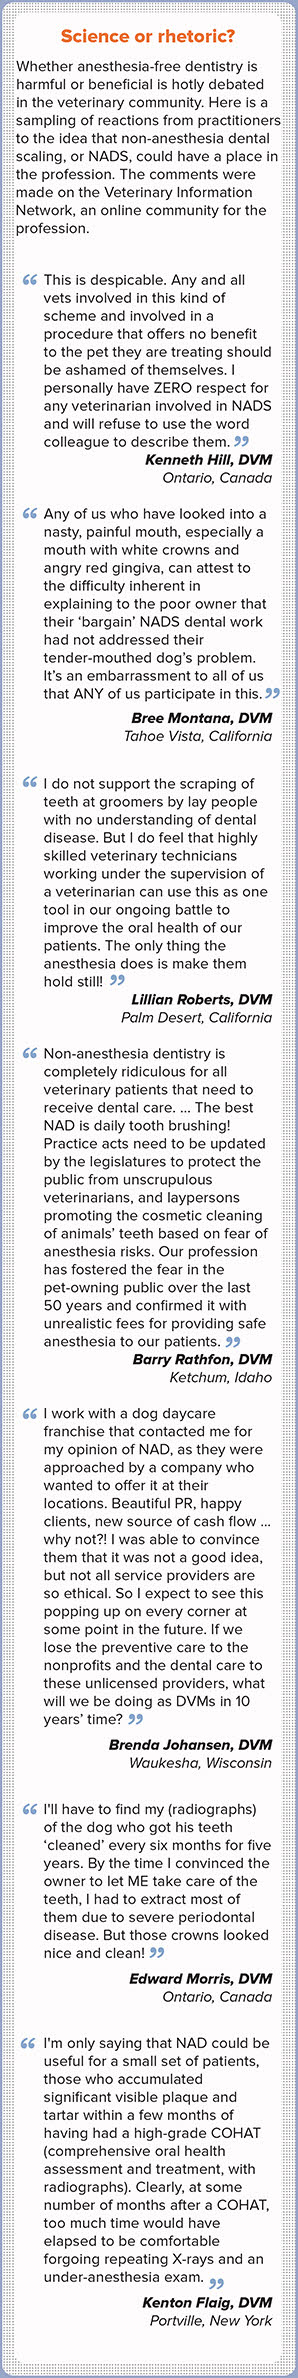 Debate rages over anesthesia-free dentistry - VIN